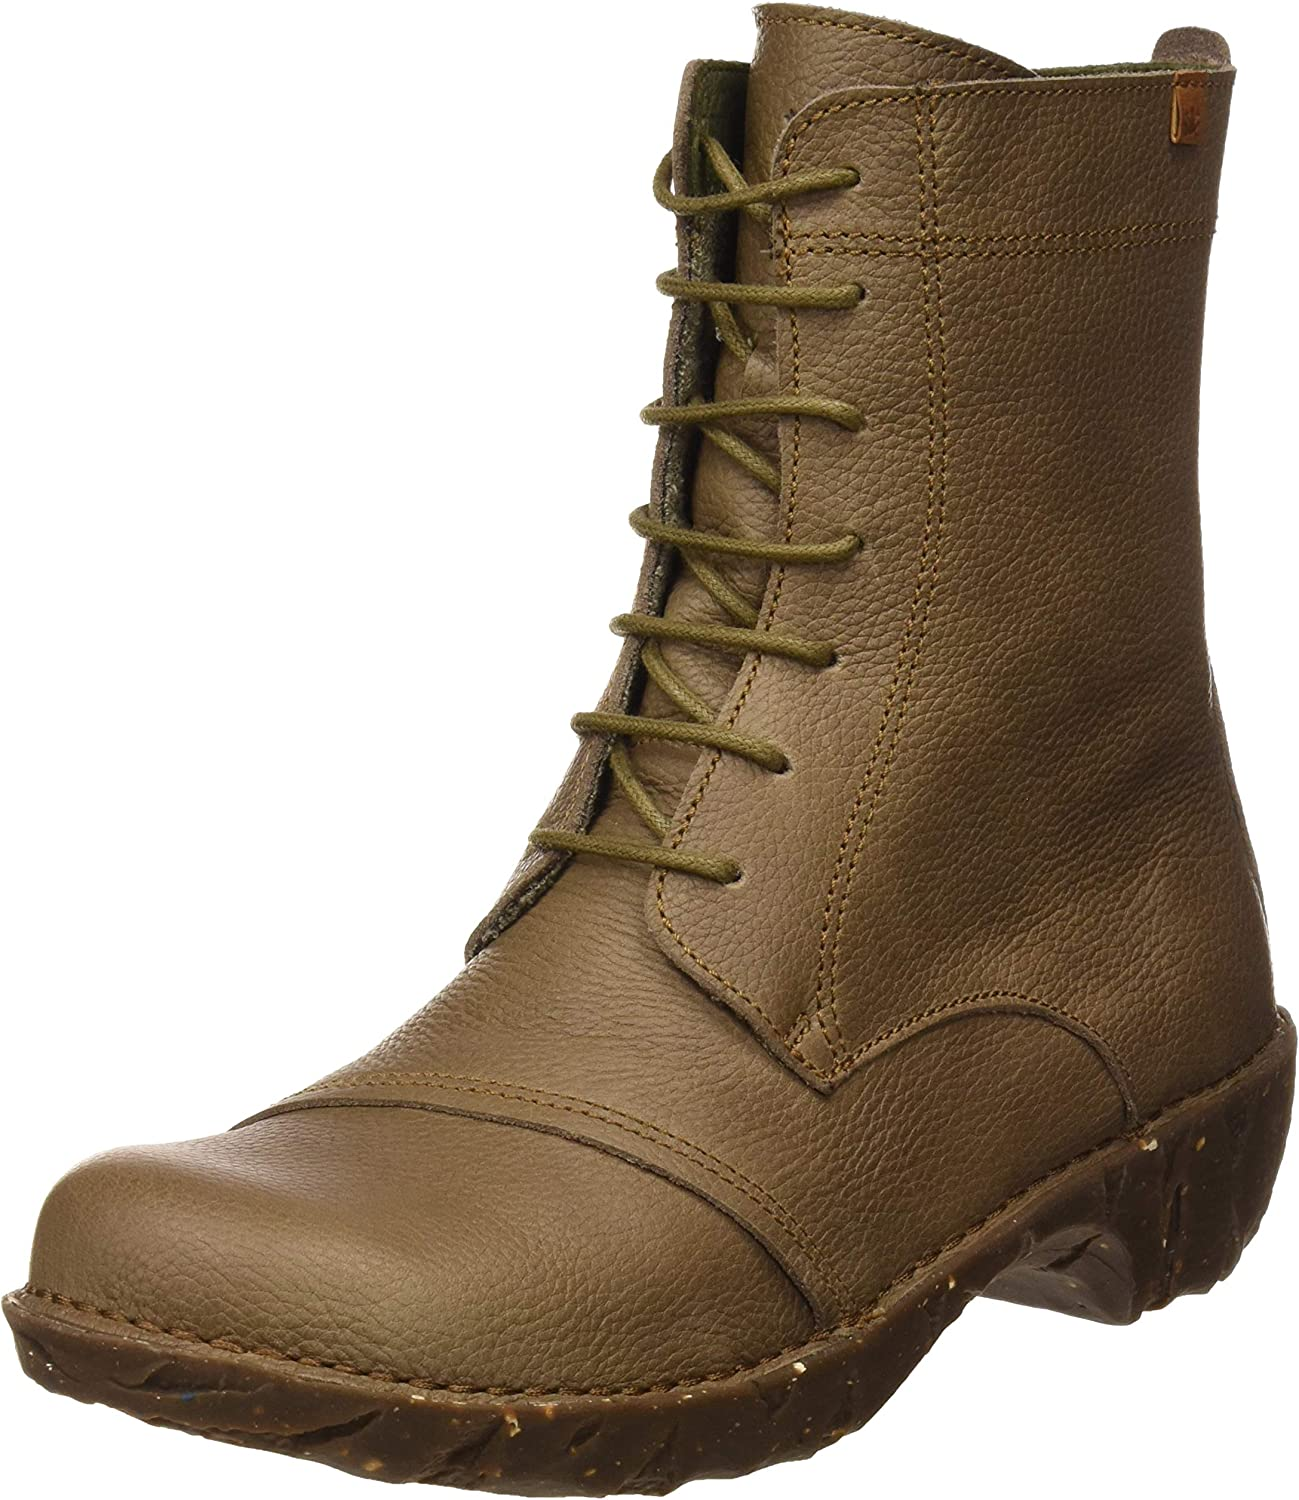 El Naturalista Women's Ankle us All items free shipping 6 OFFicial store Boots